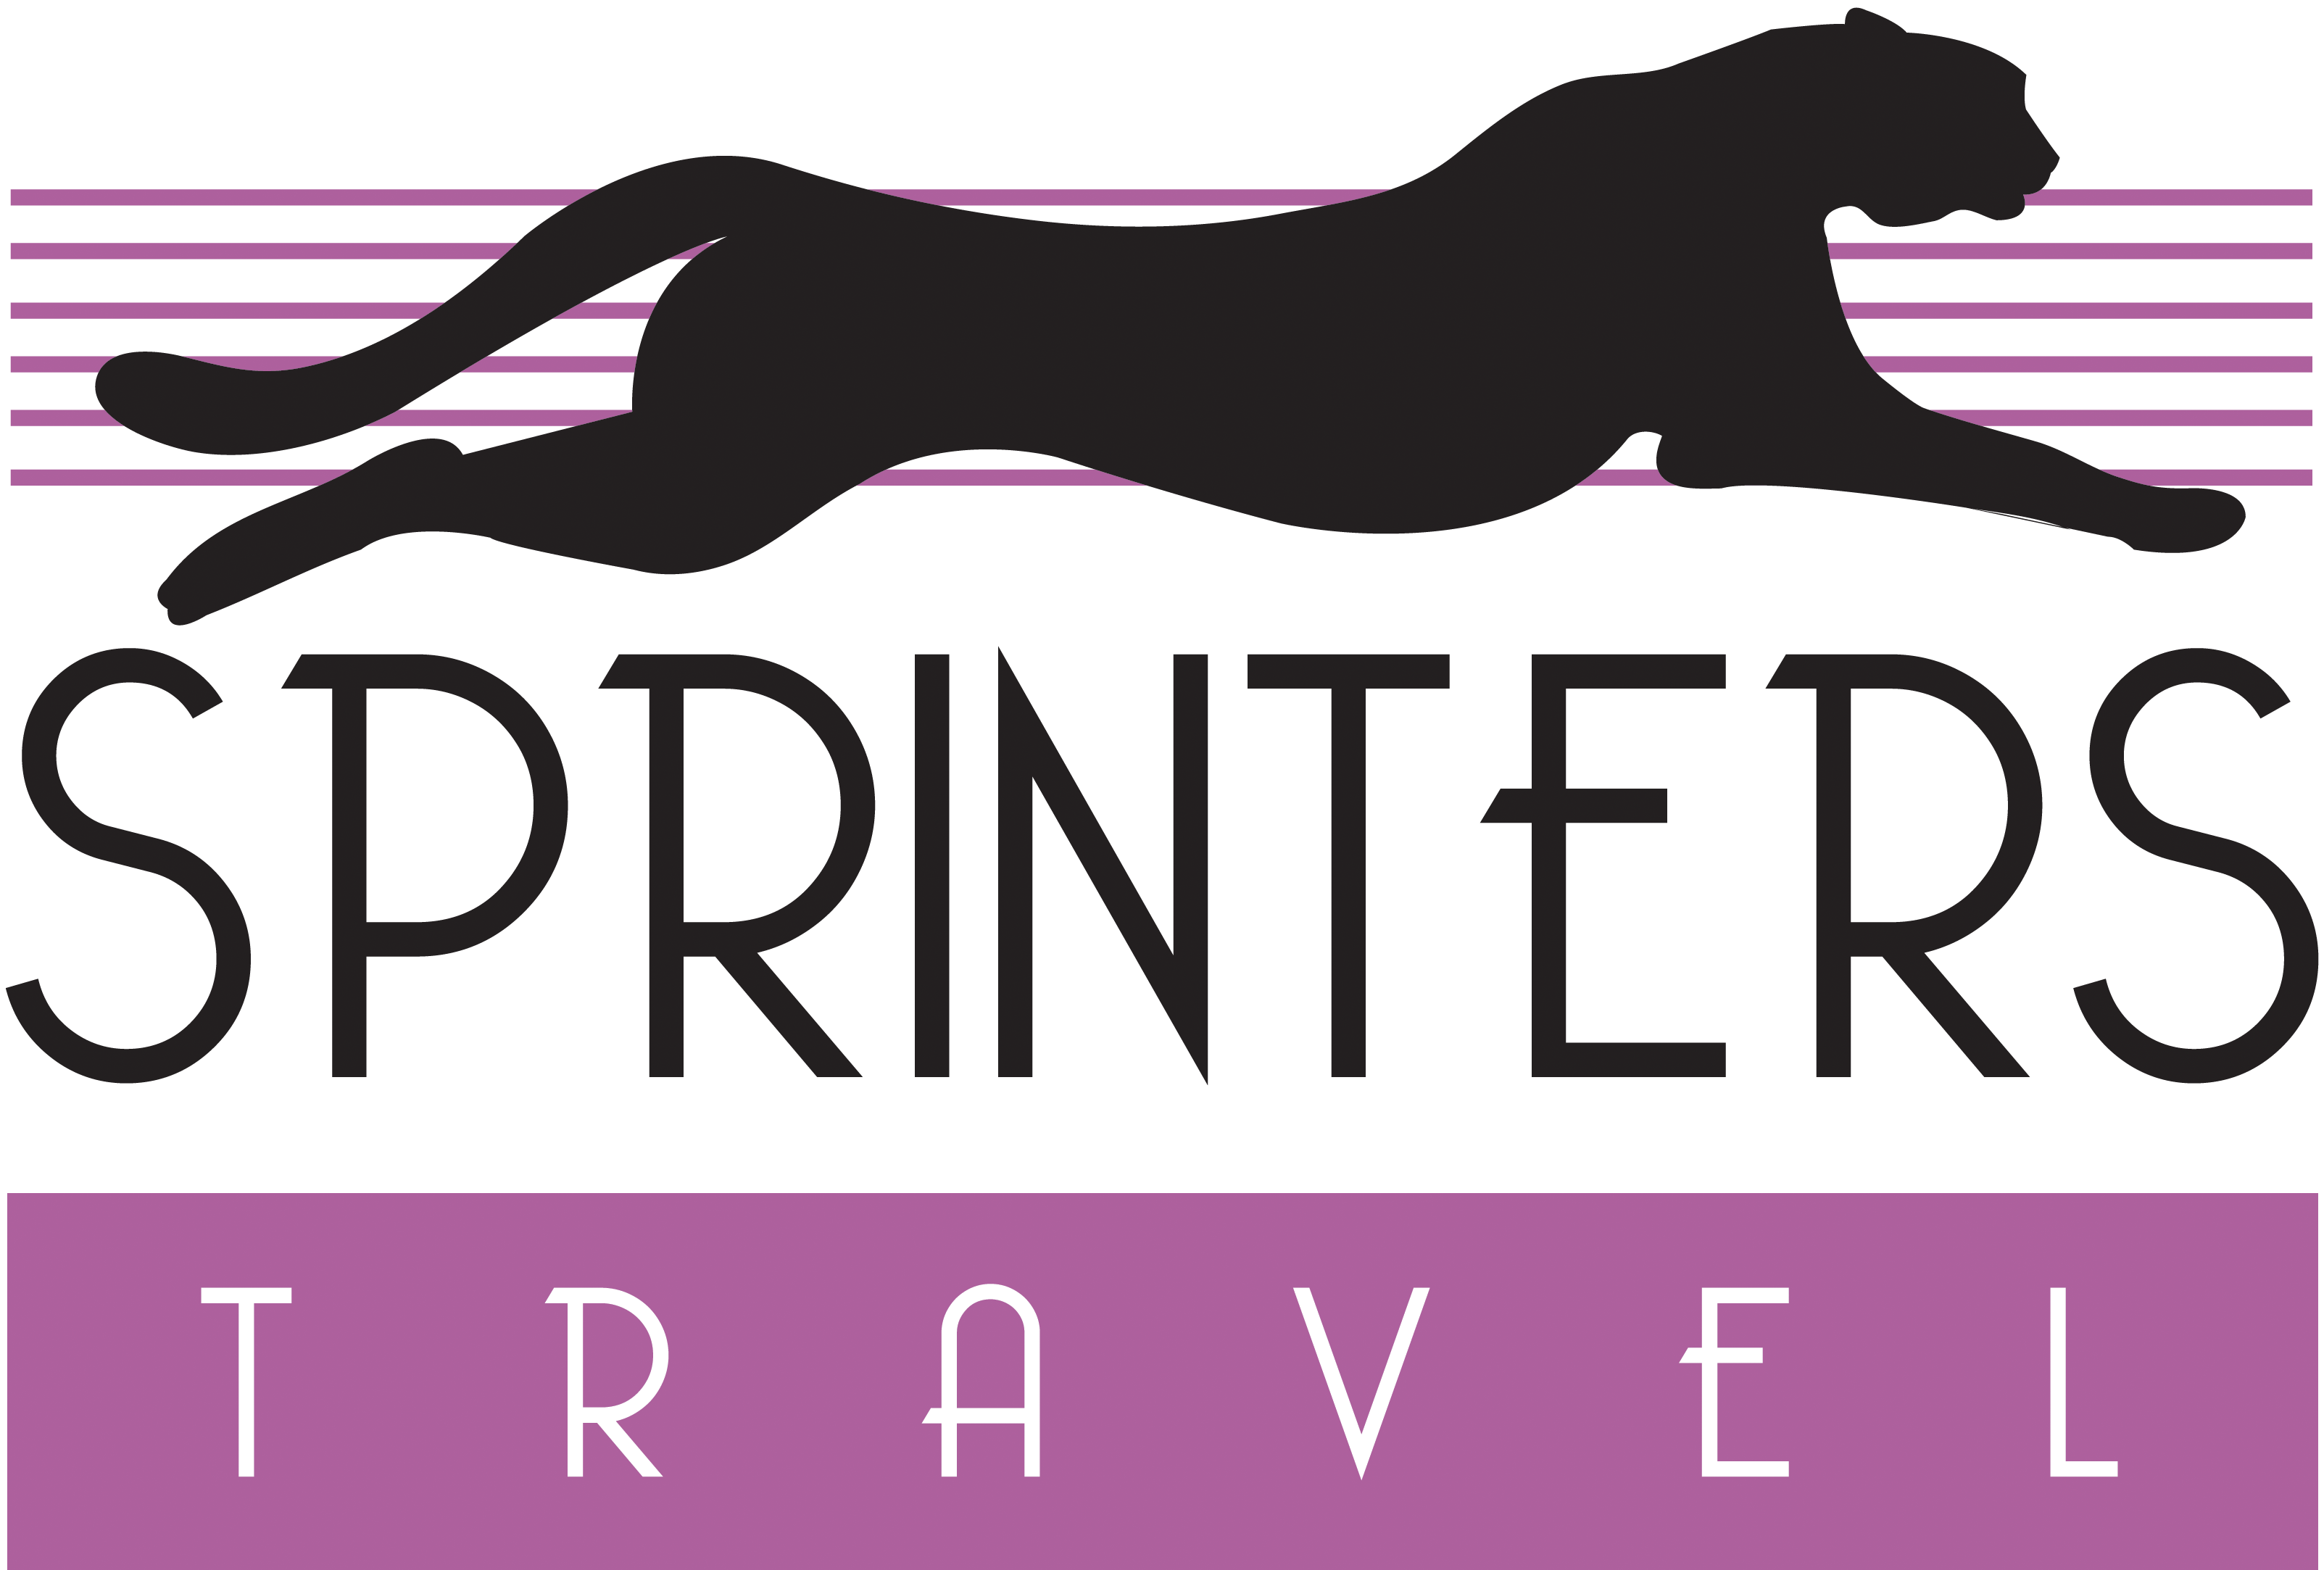 Sprinters Travel | Corporate Coach Hire High Wycombe | Sprinters Travel